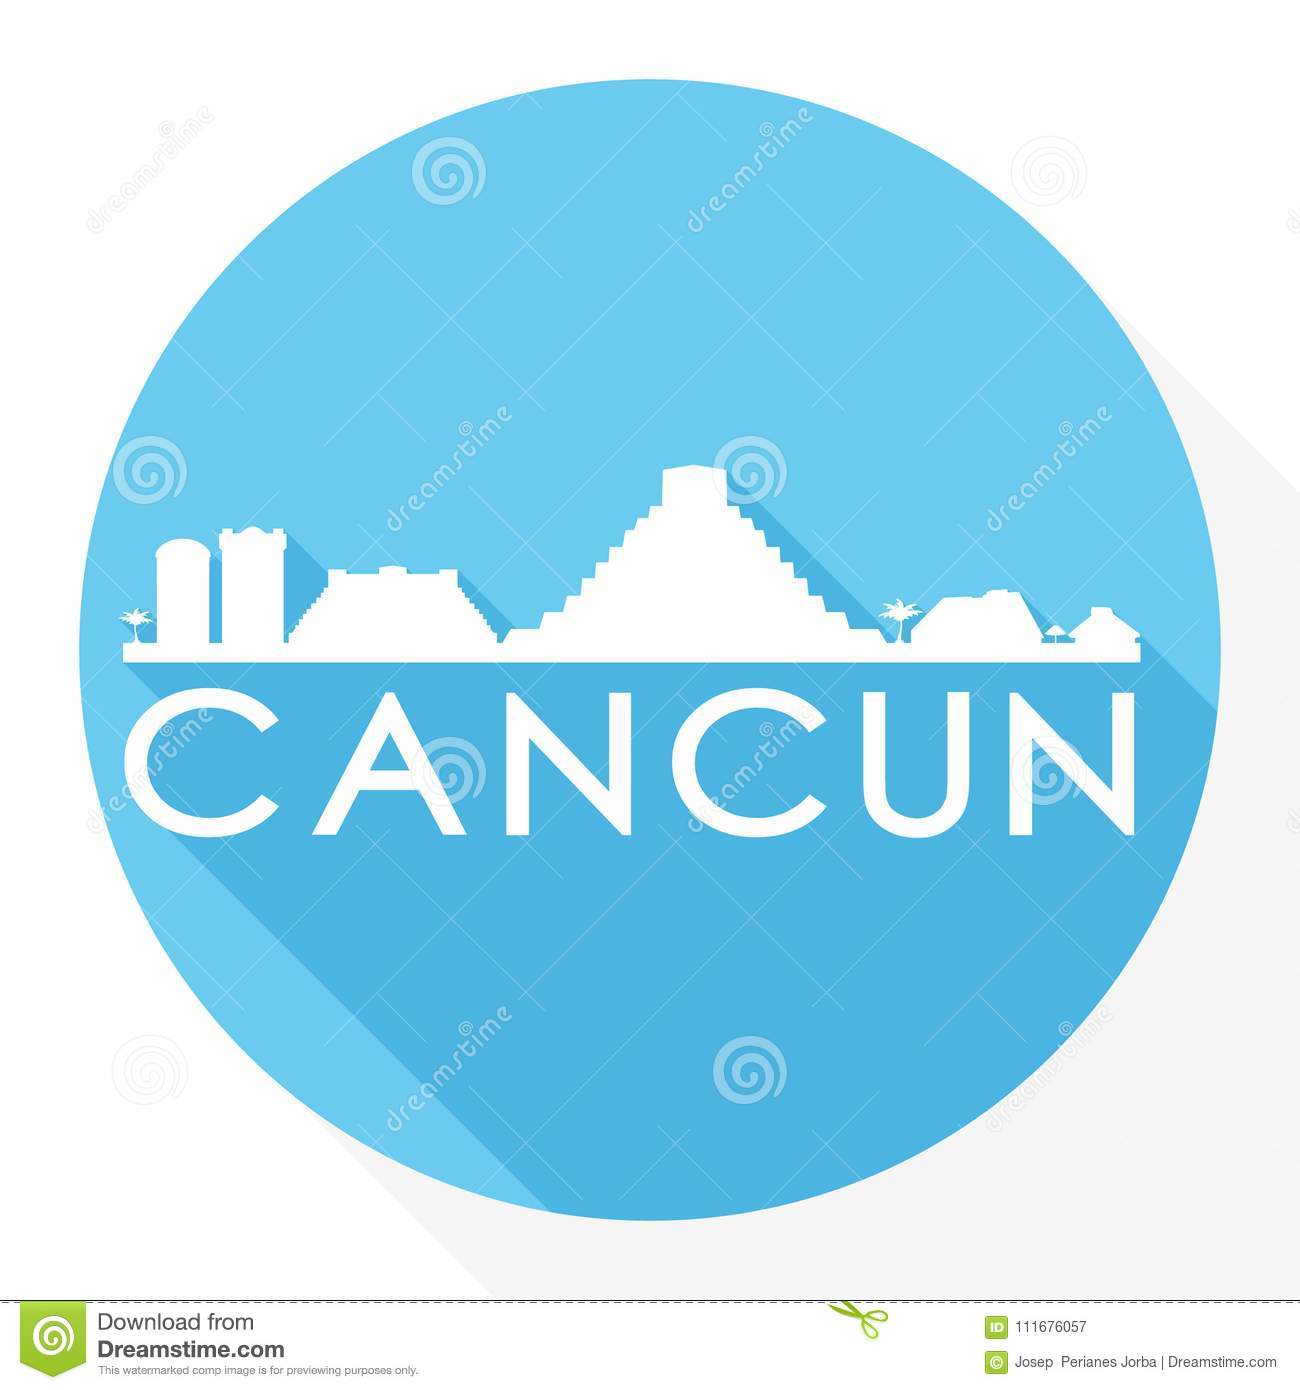 Cancun Mexico Round Icon Vector Art Flat Shadow Design Skyline City